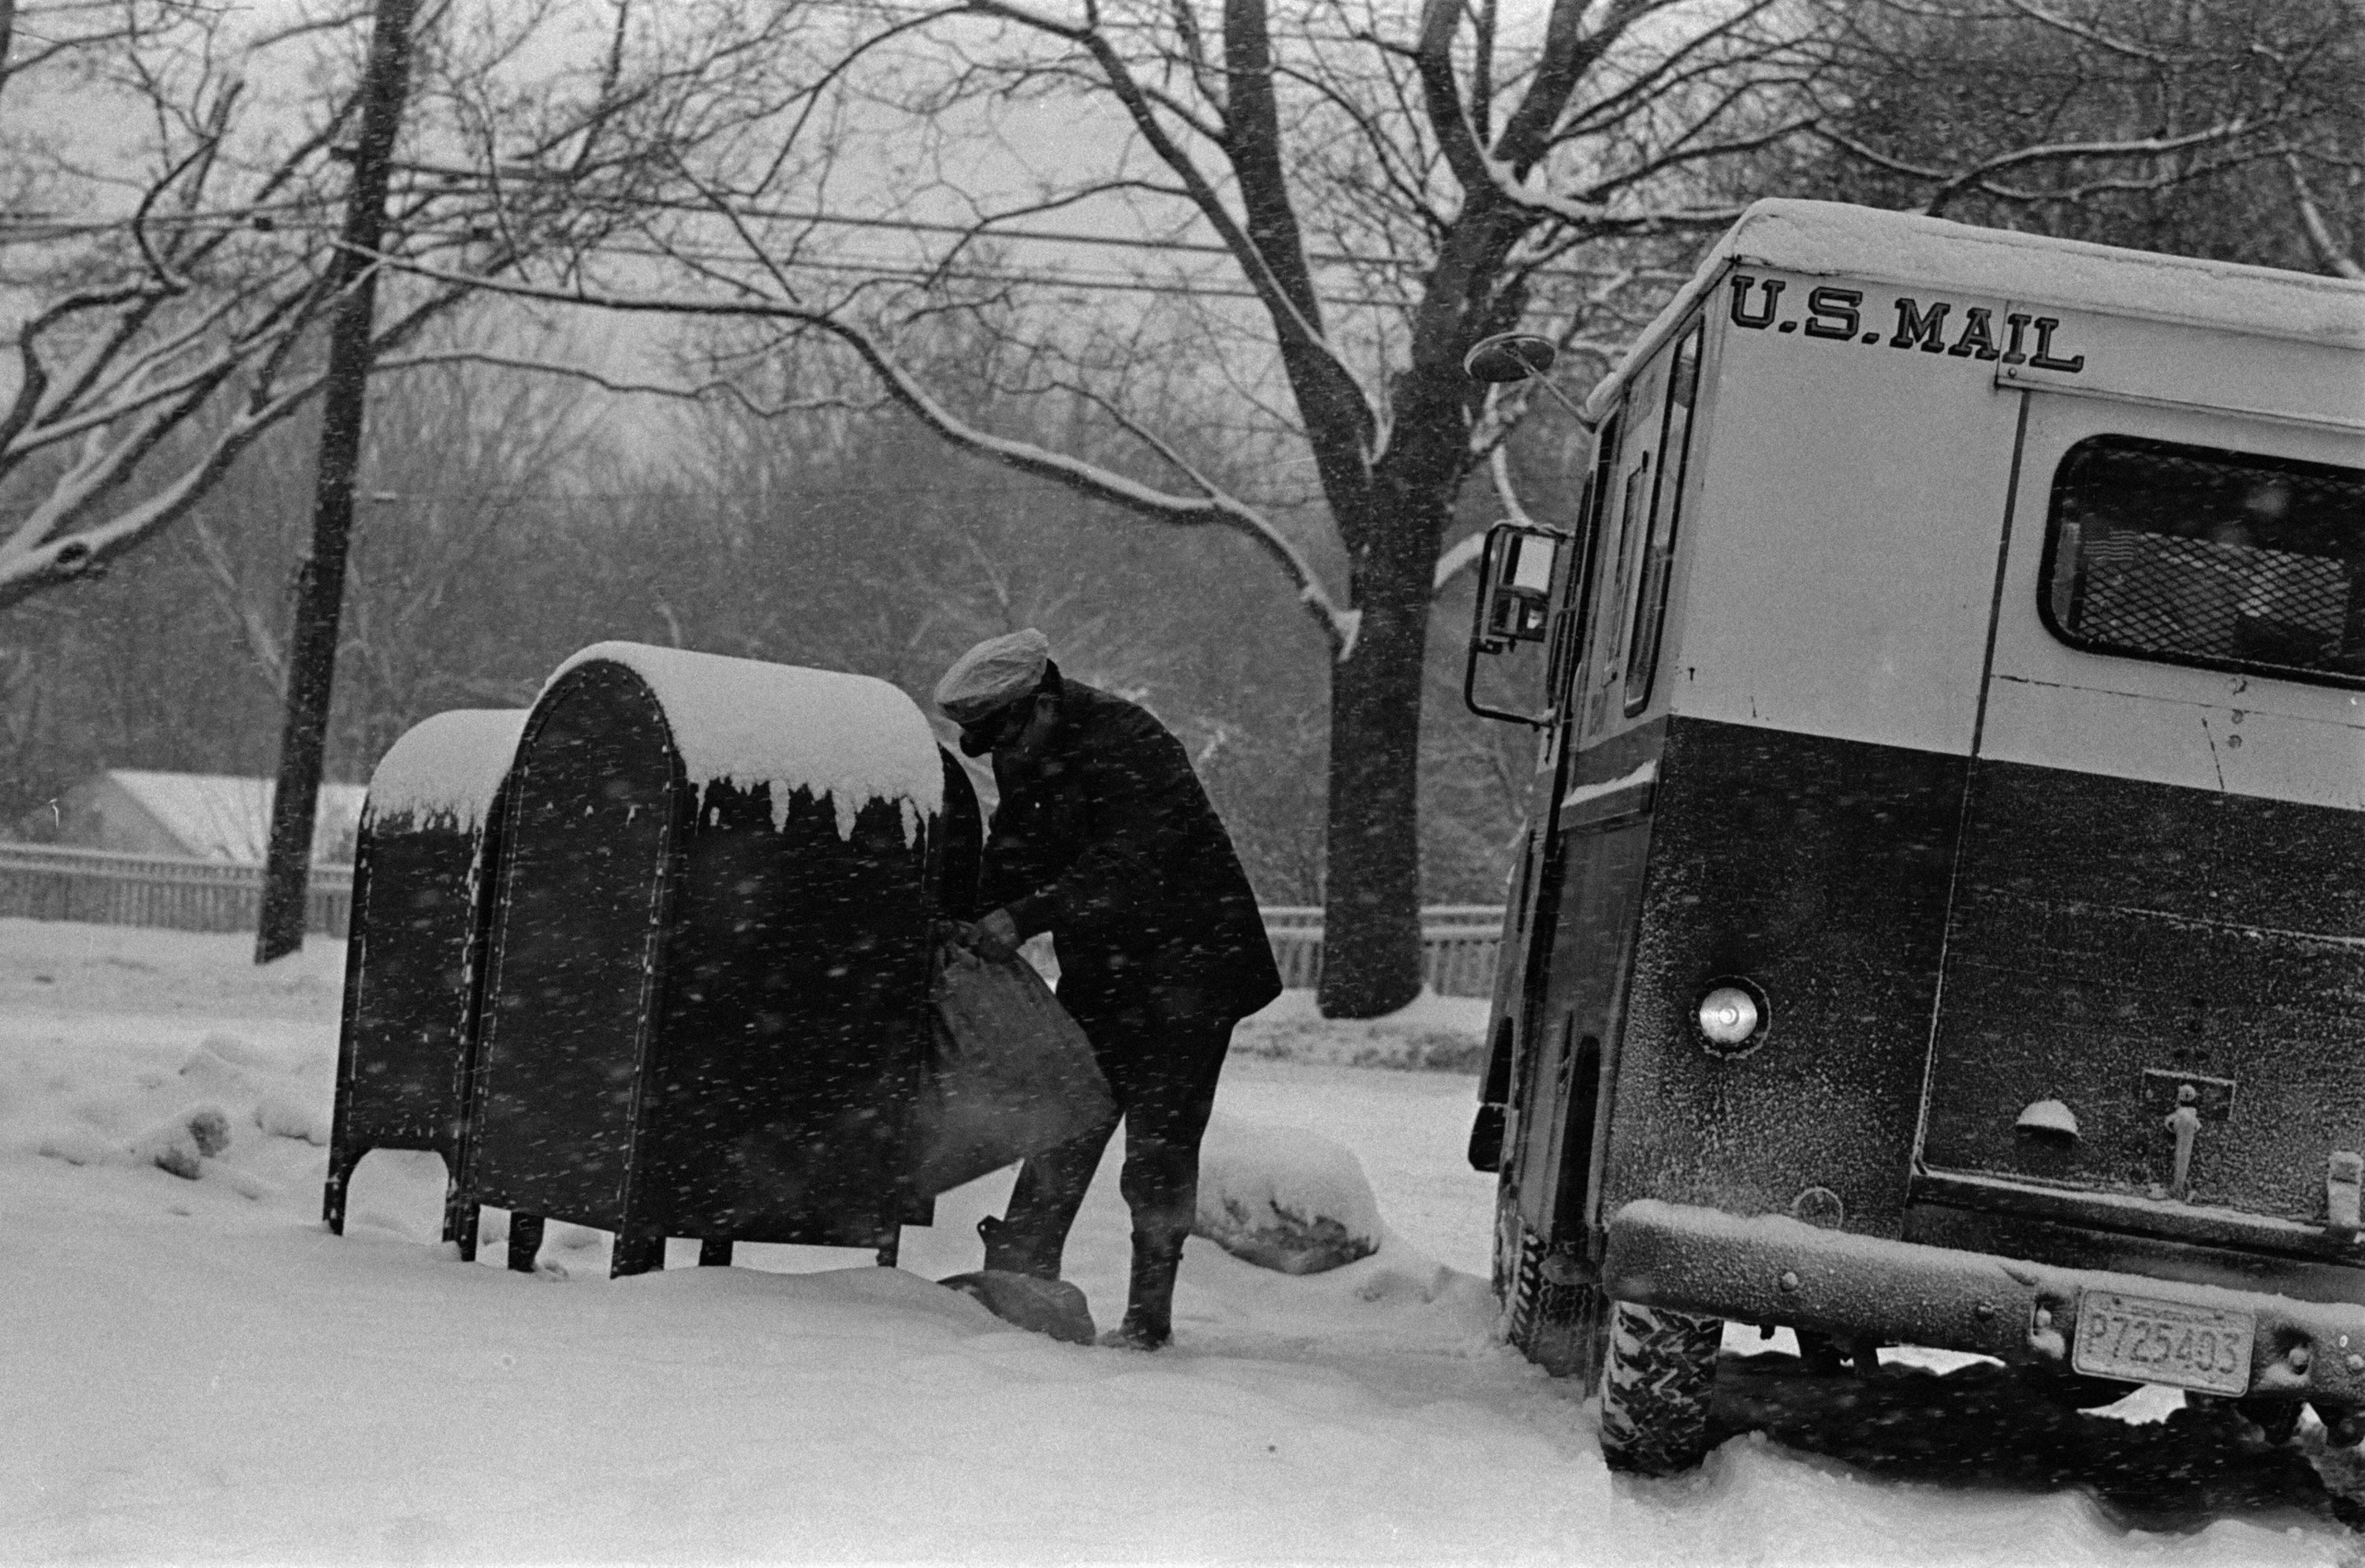 A man unloads mail from mailboxes covered by snow